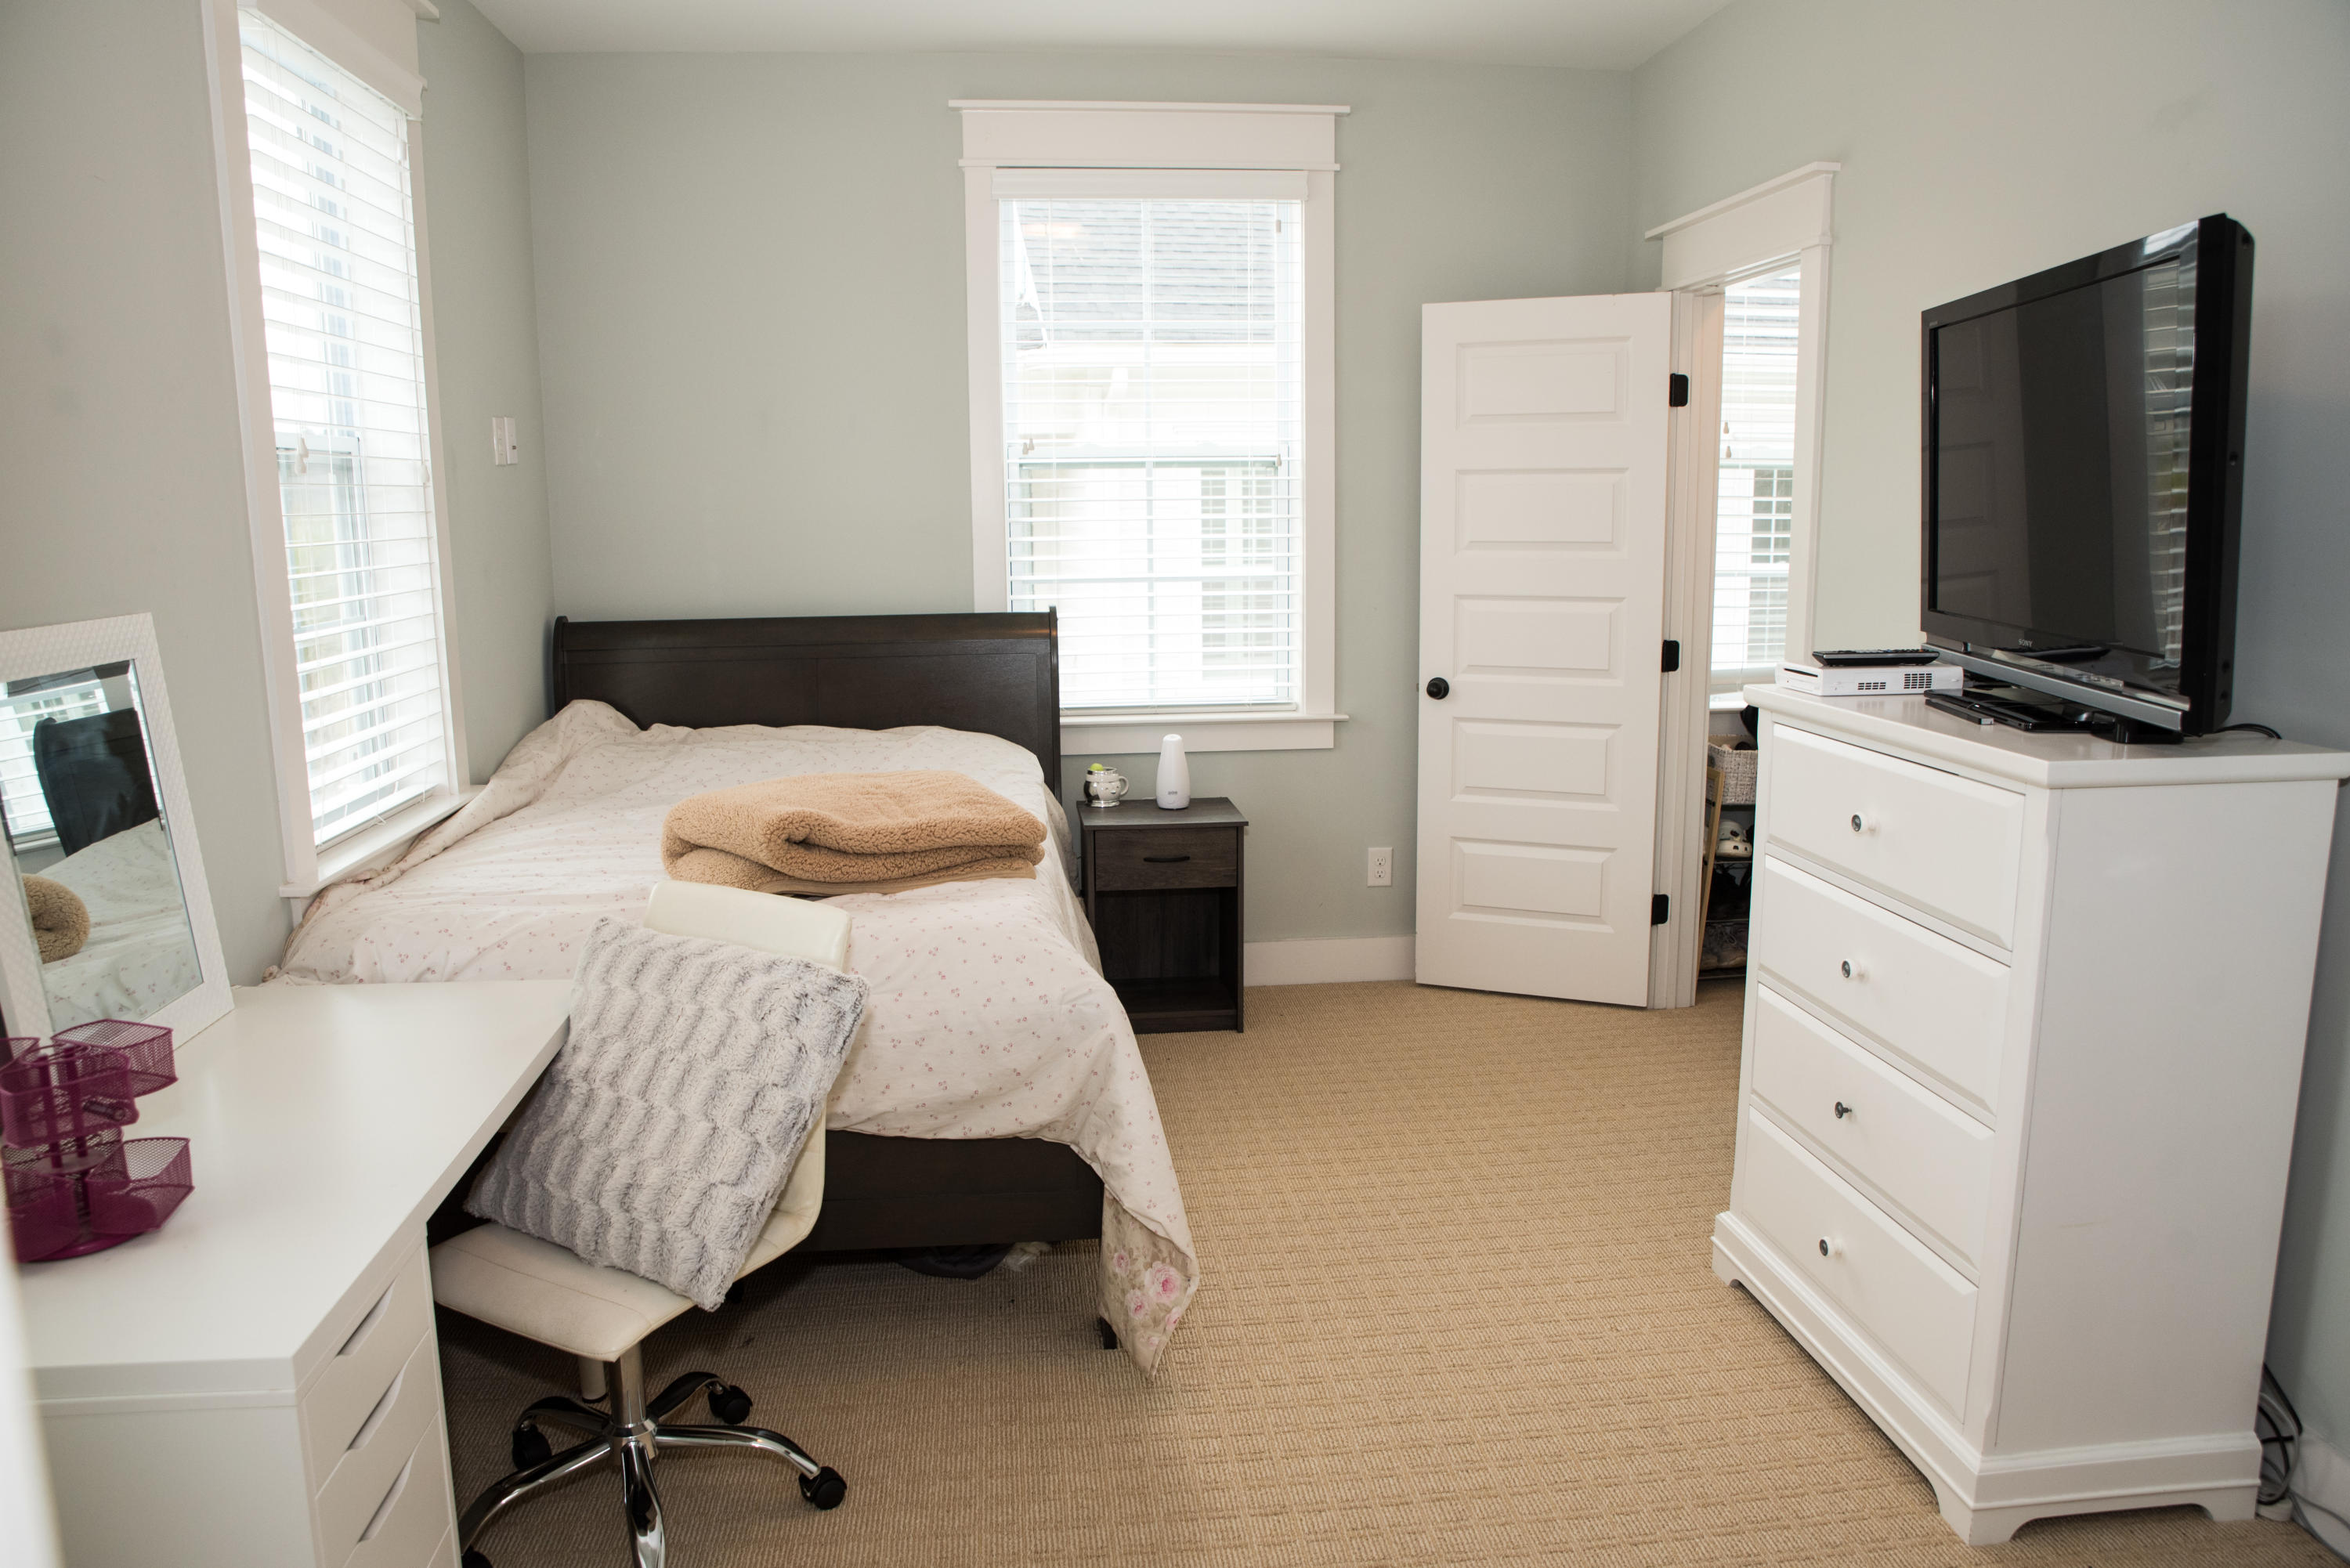 Rivertowne On The Wando Homes For Sale - 2861 Rivertowne, Mount Pleasant, SC - 25